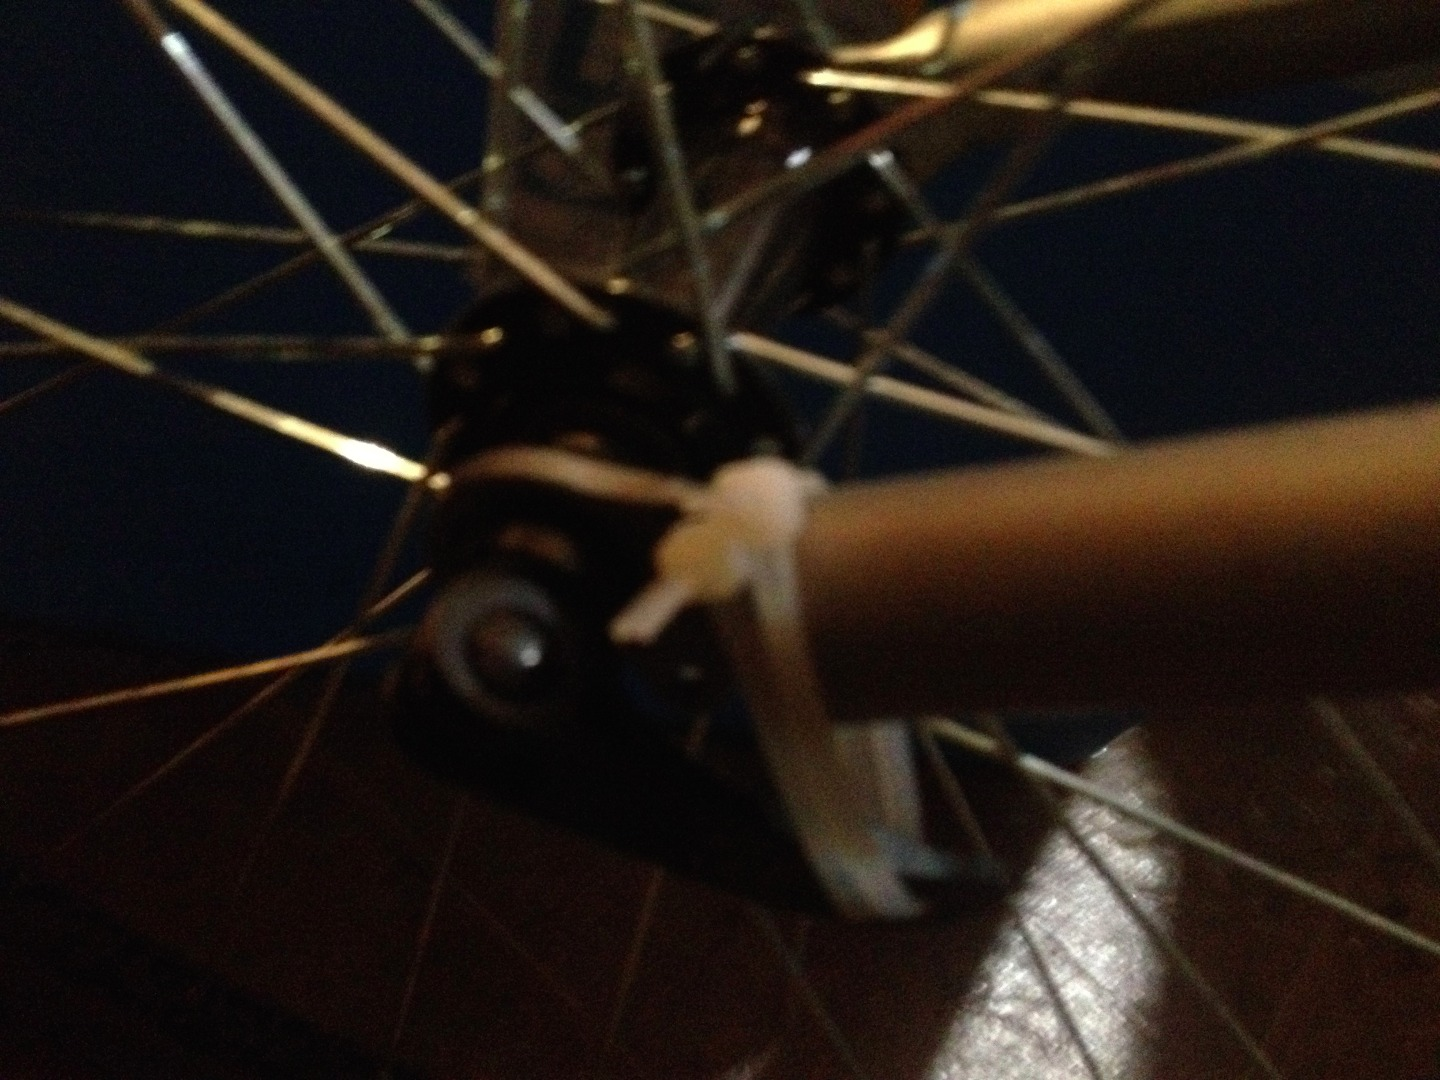 Picture of Zip Tie Bike Theft Prevention Device